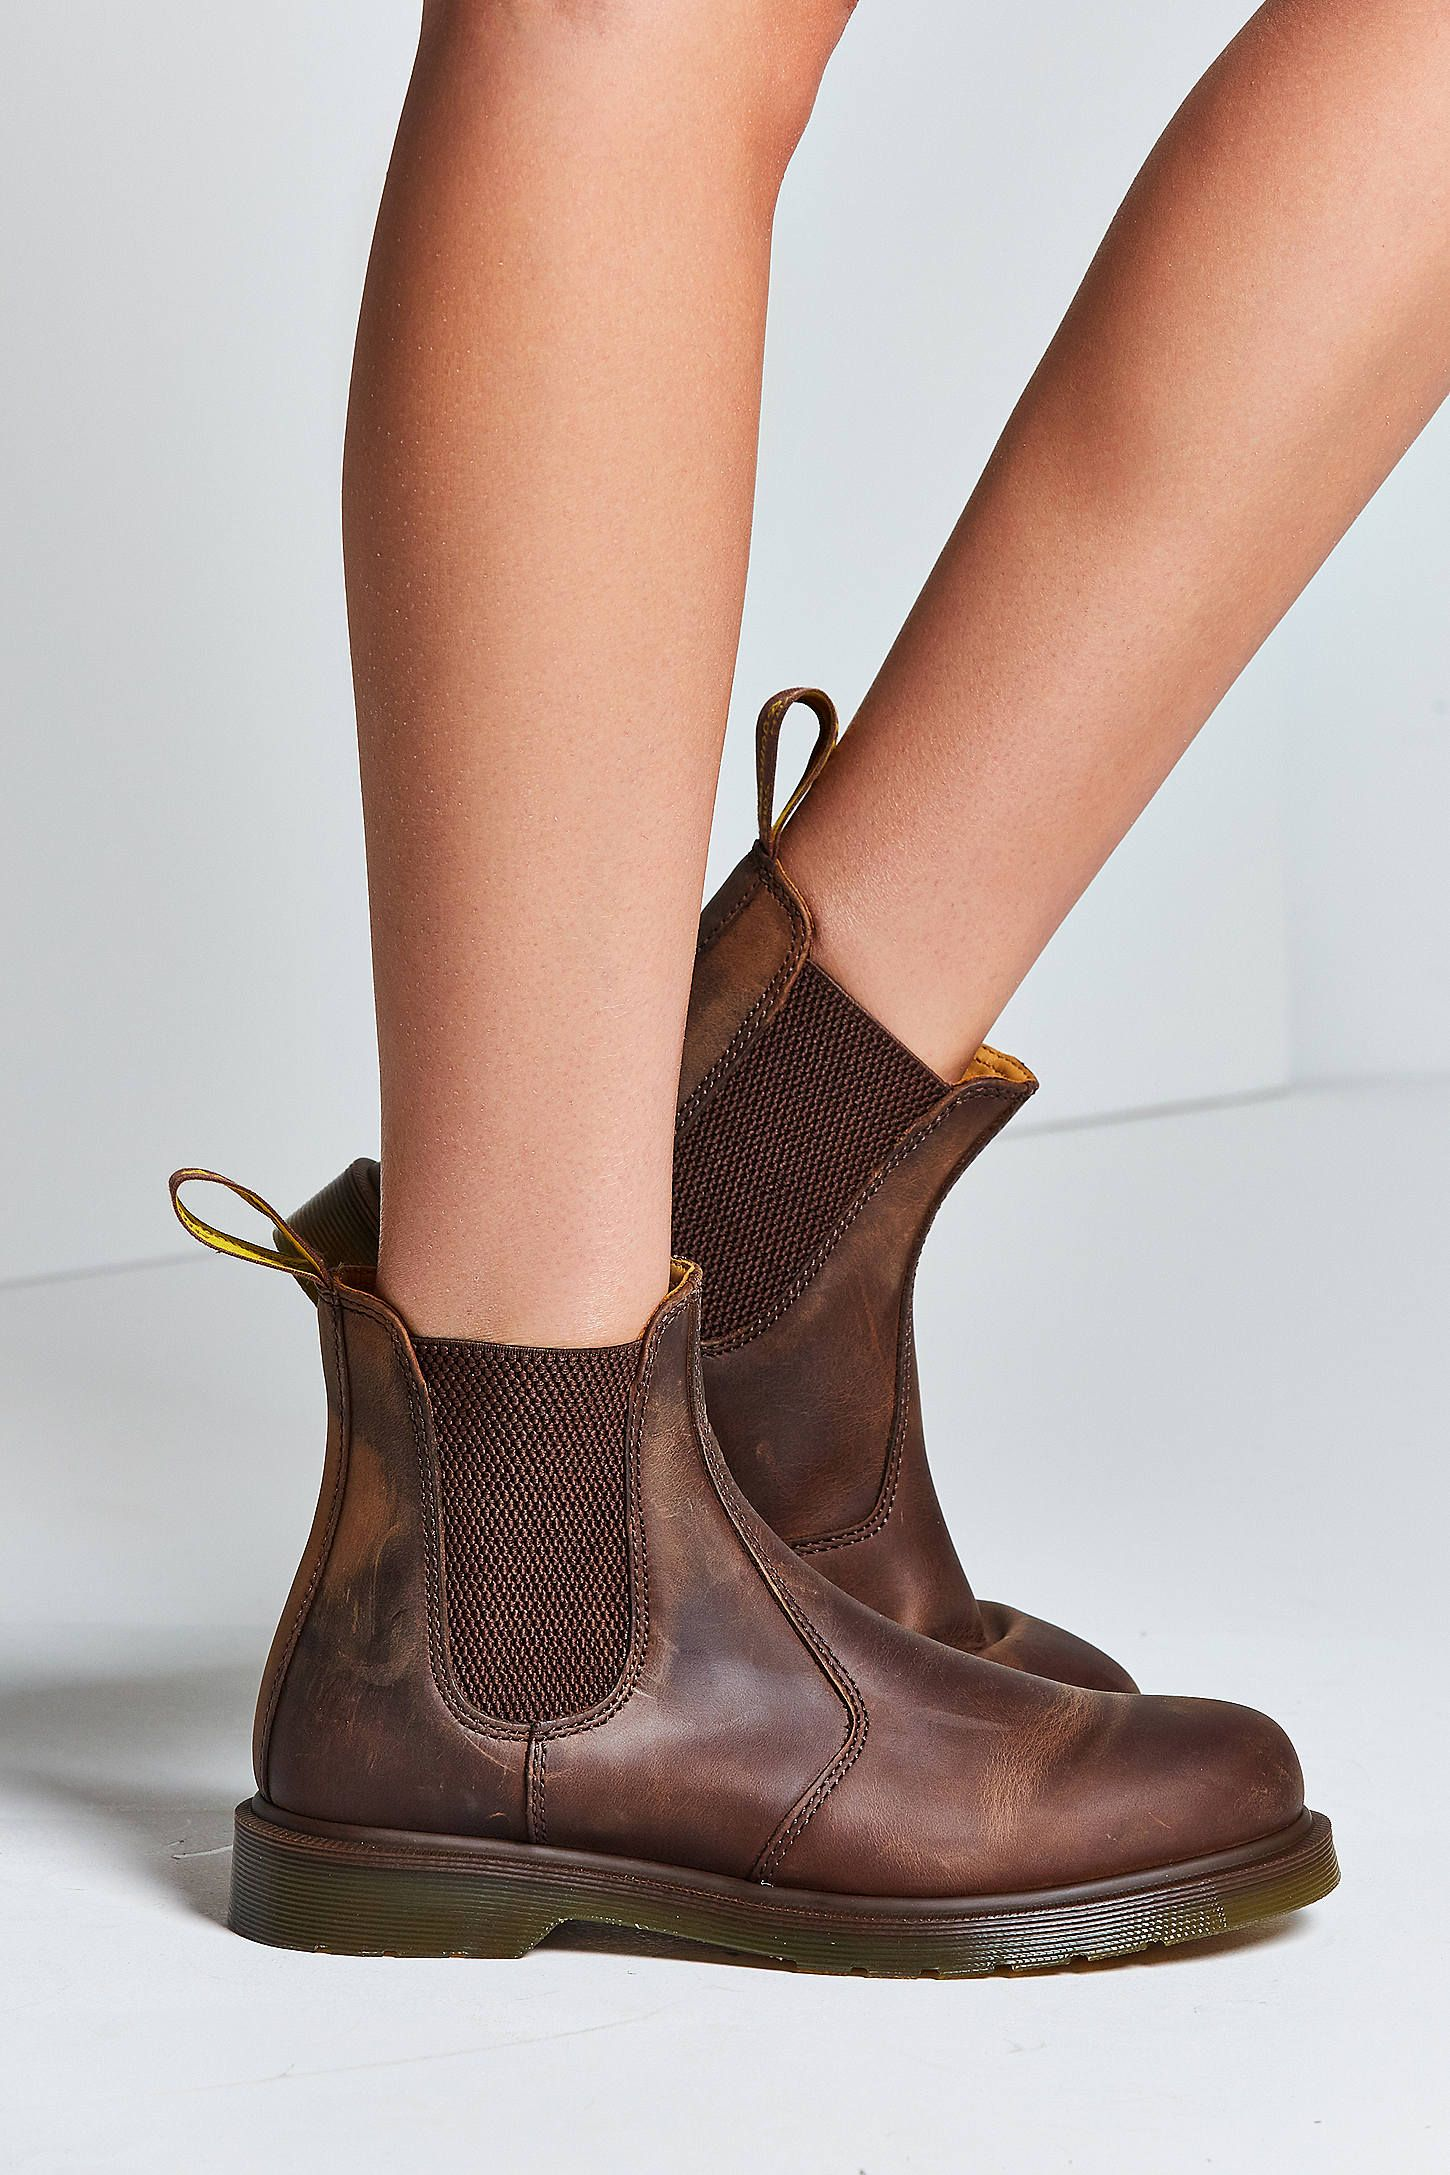 new arrivals best supplier latest discount Dr. Martens 2976 Crazy Horse Chelsea Boot | s h o e s ...